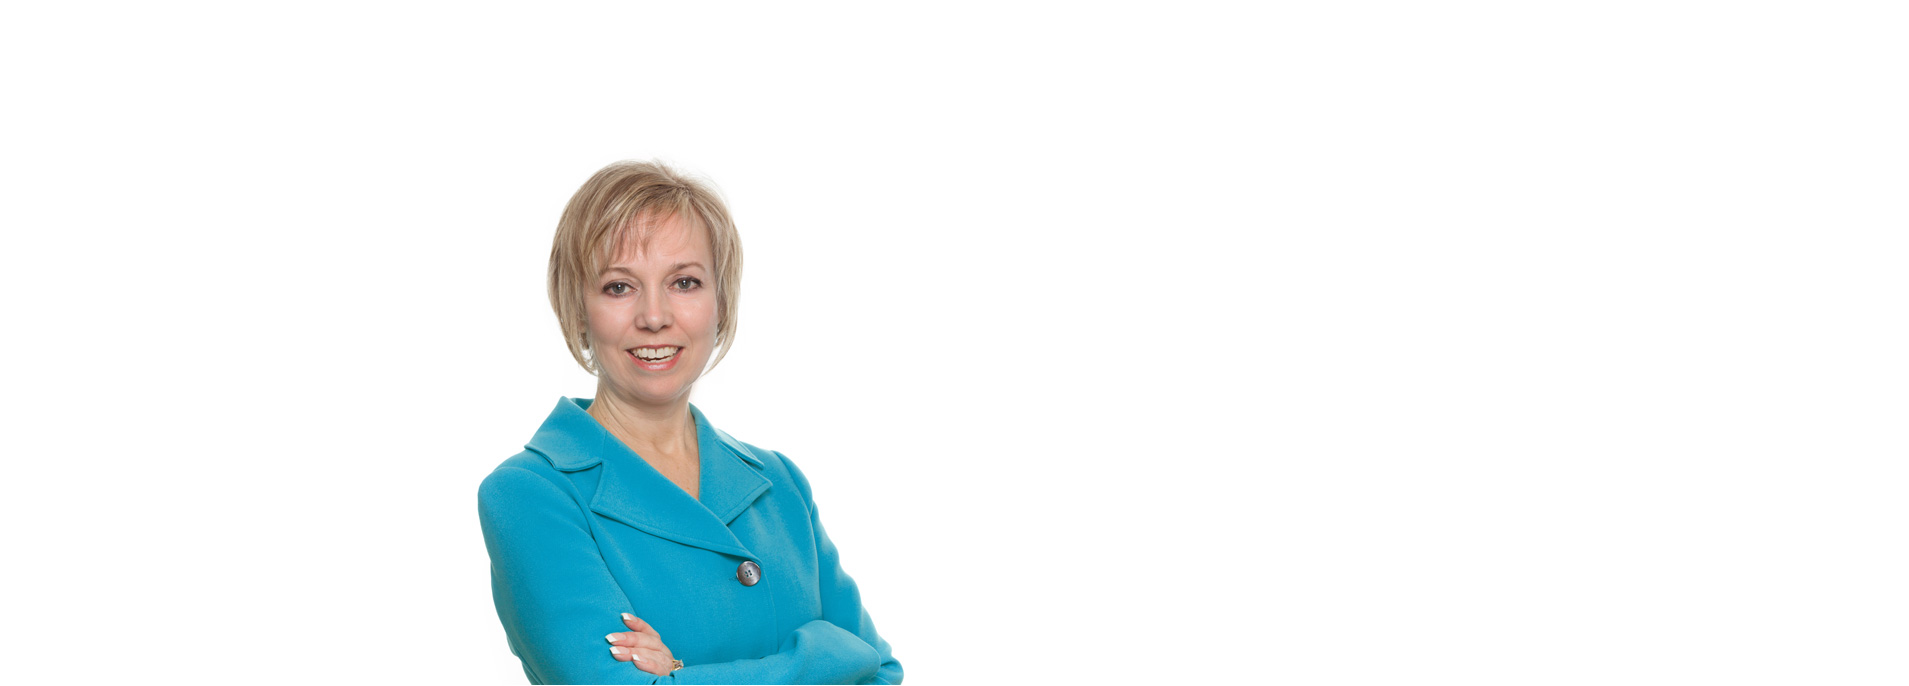 Lynn Donn, Real Estate Agent in Nanaimo, BC